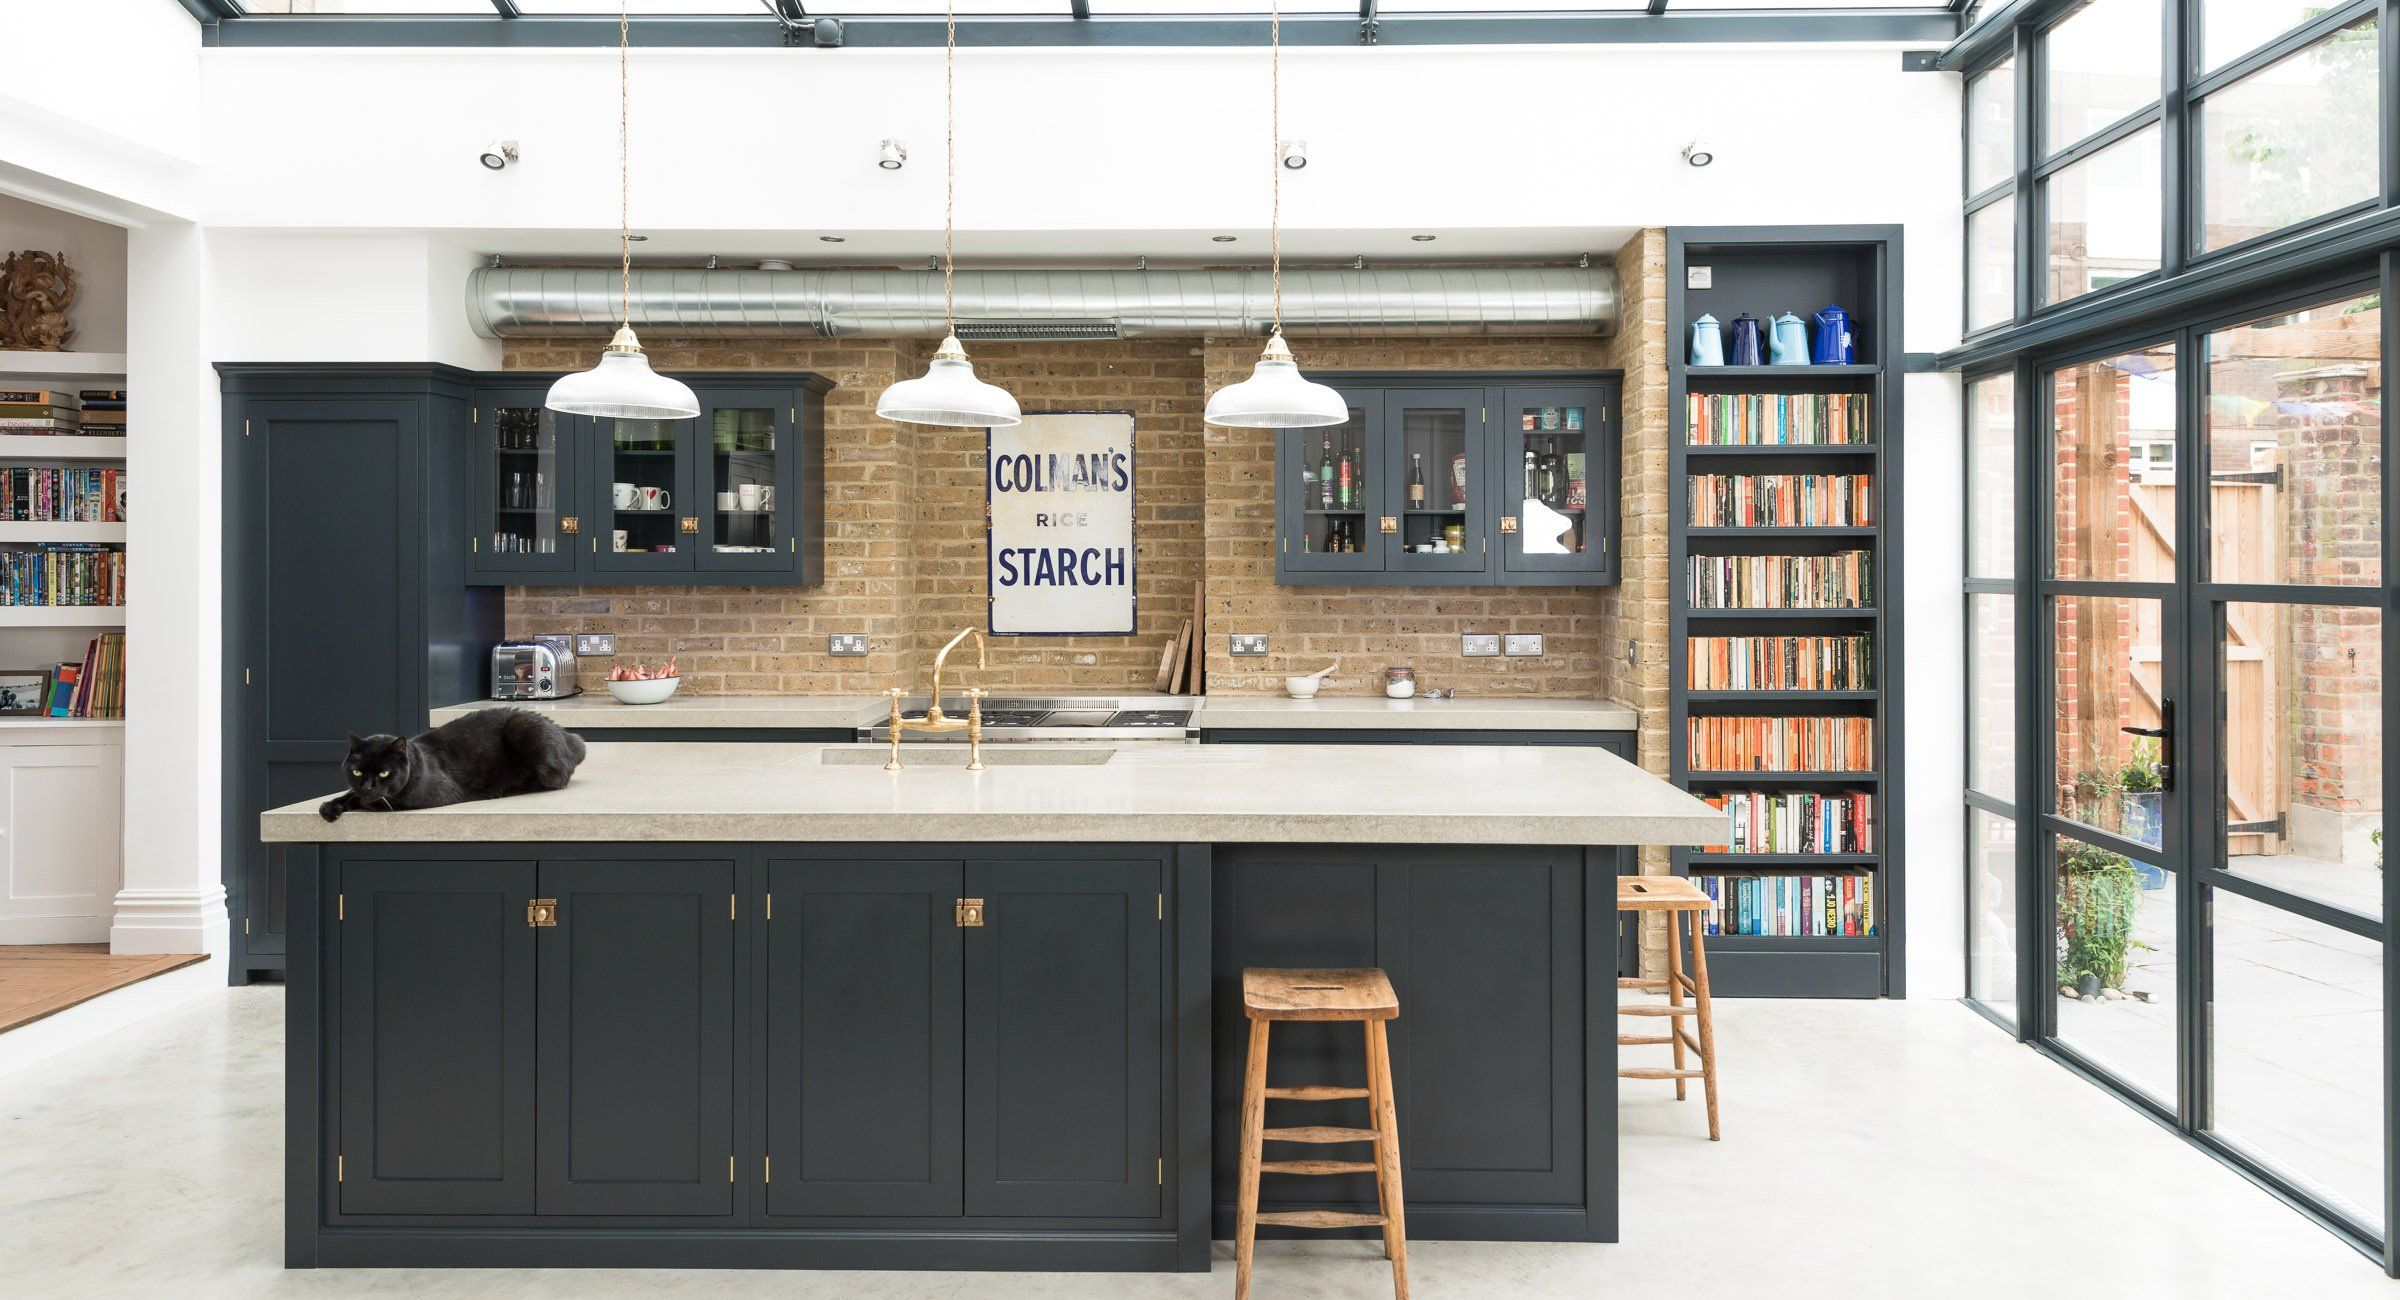 Shaker kitchens by devol handmade painted english for Shaker style kitchen units